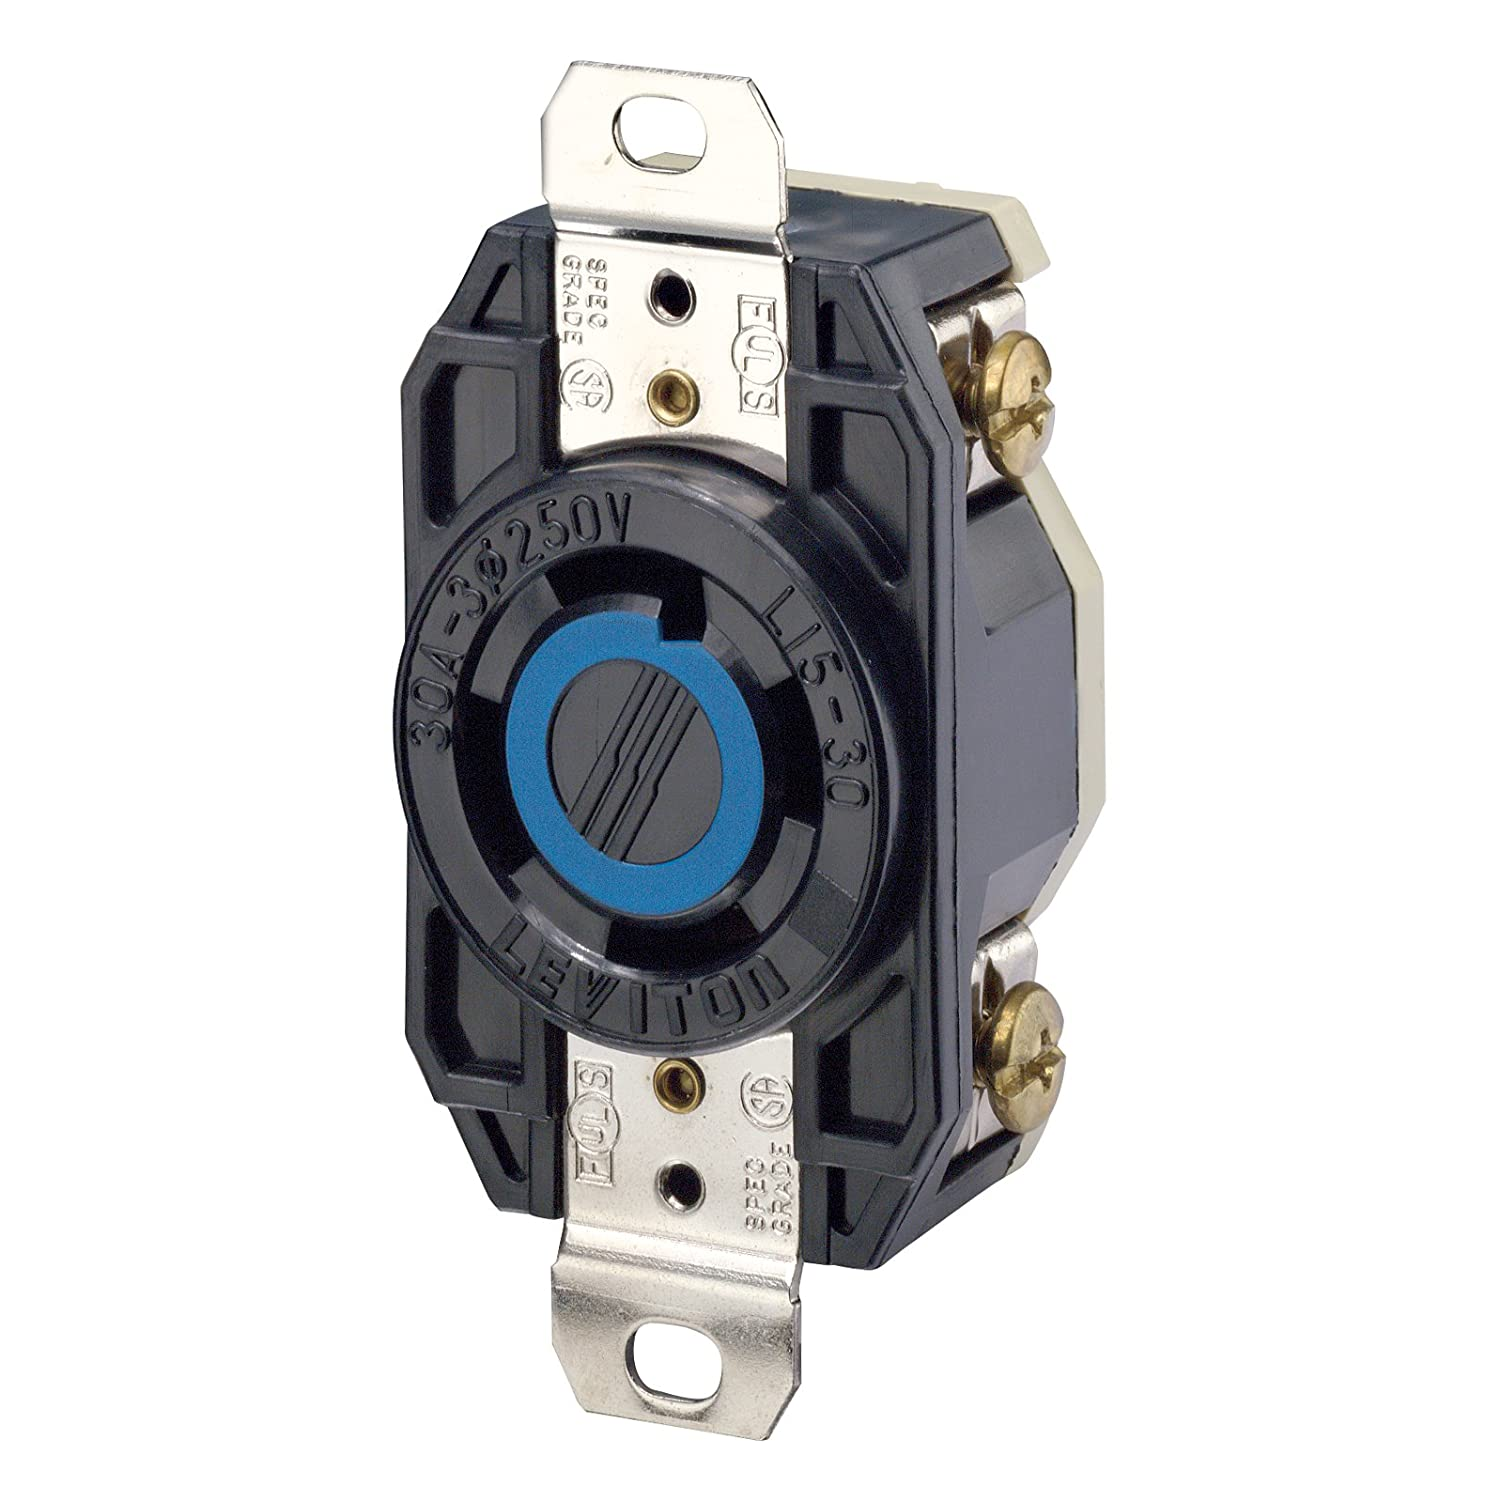 Leviton 2720 30 Amp, 250 Volt 3-Phase, Flush Mounting Locking Receptacle,  Industrial Grade, Grounding, V-0-MAX, Black - Electric Plugs - Amazon.com